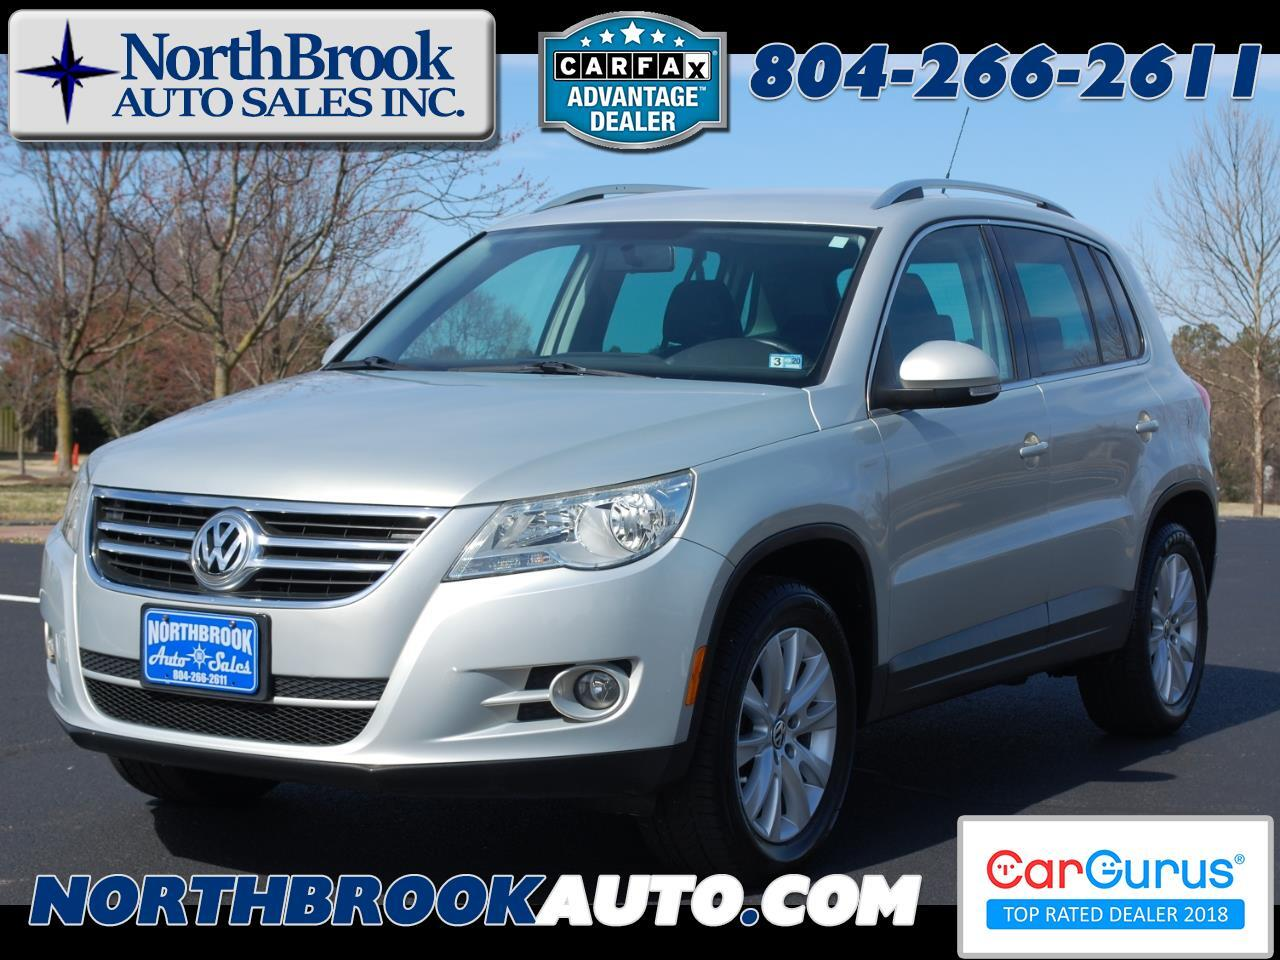 2010 Volkswagen Tiguan FWD 4dr SE w/Leather *Ltd Avail*